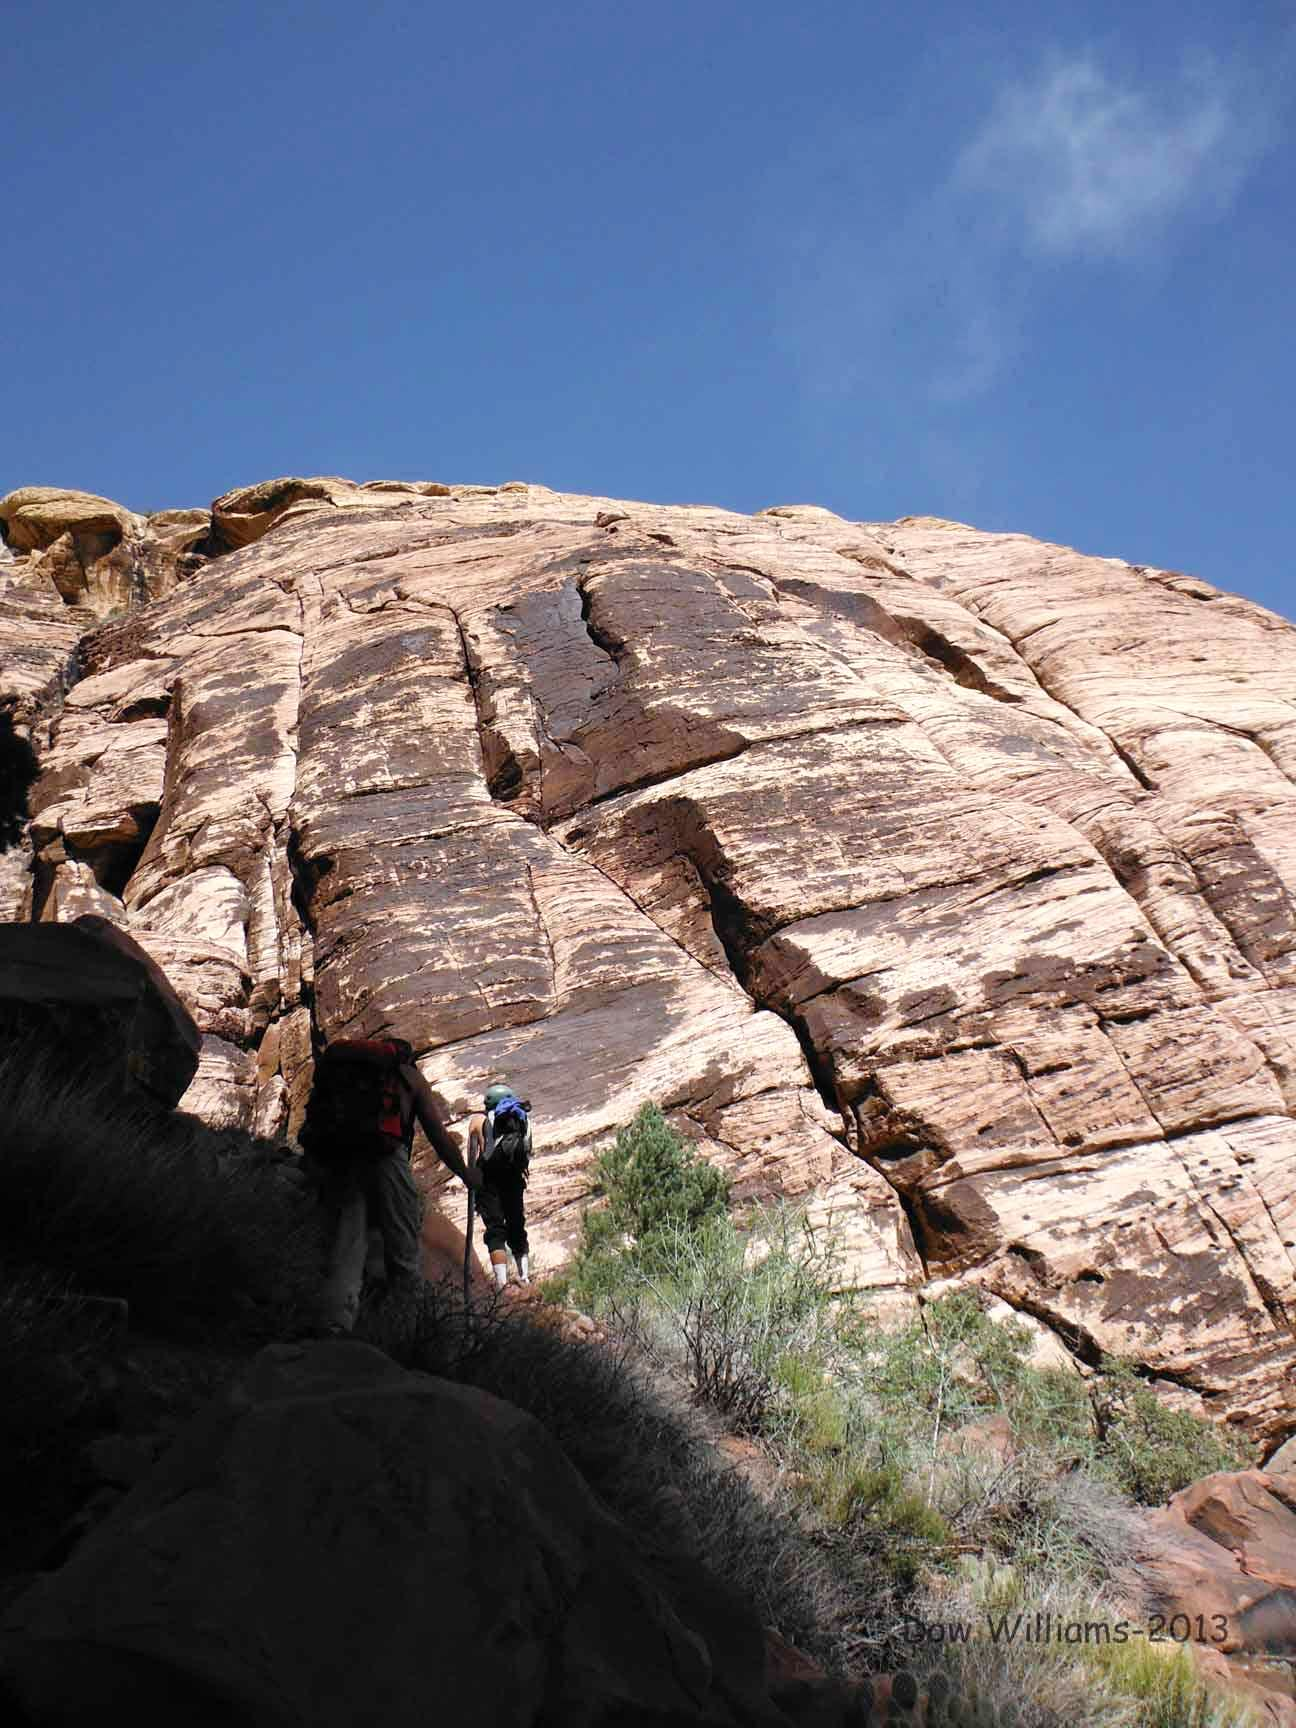 Smooth Operator, 5.9, 3 Pitches